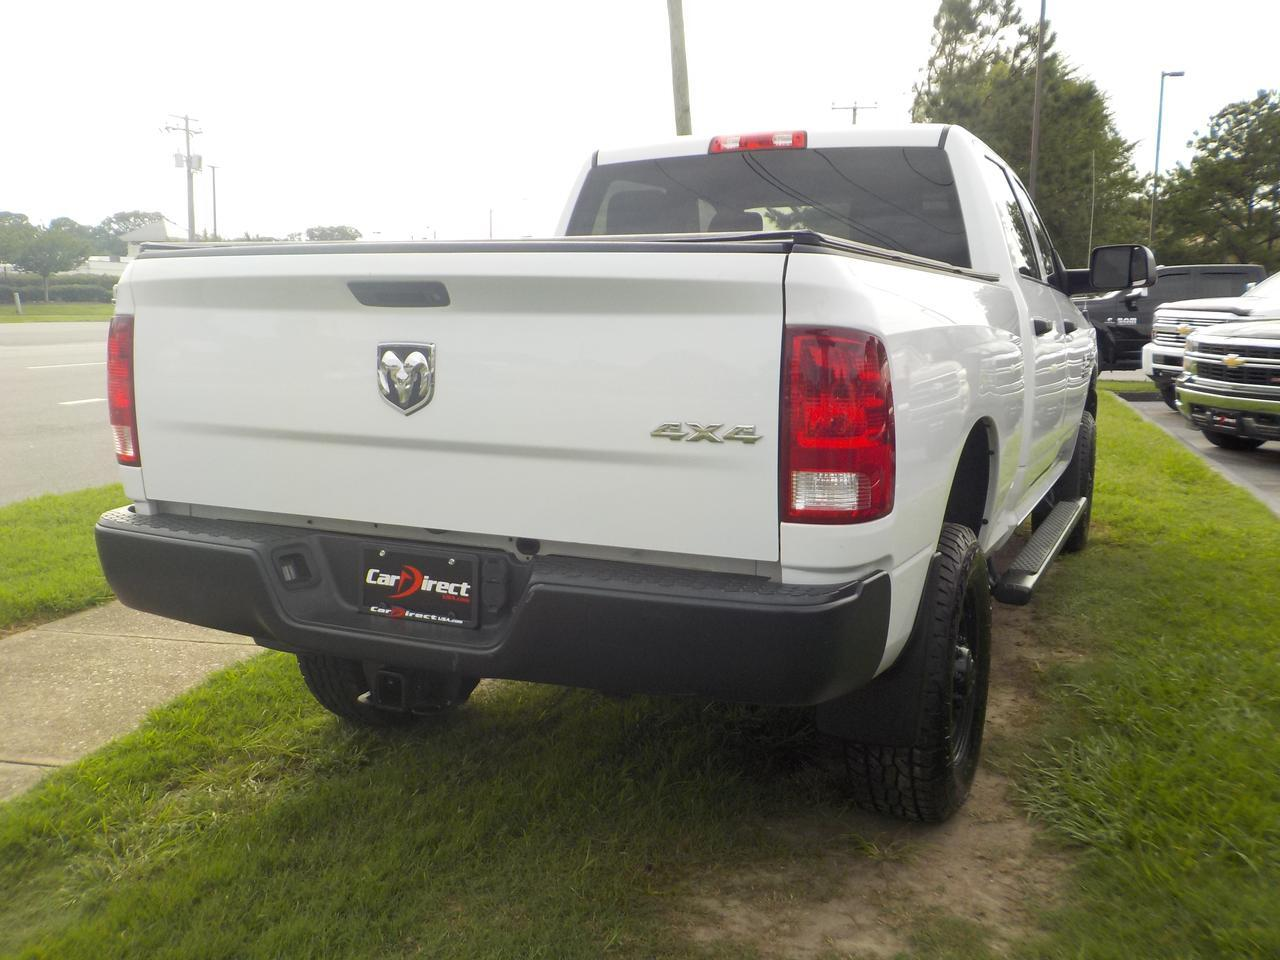 2016 RAM 2500 TRADESMAN, 4X4, FRONT & REAR AIRBAGS, LONG BED, TINTED WINDOWS, SOFT TONNEAU COVER, TOW PACKAGE!! Virginia Beach VA